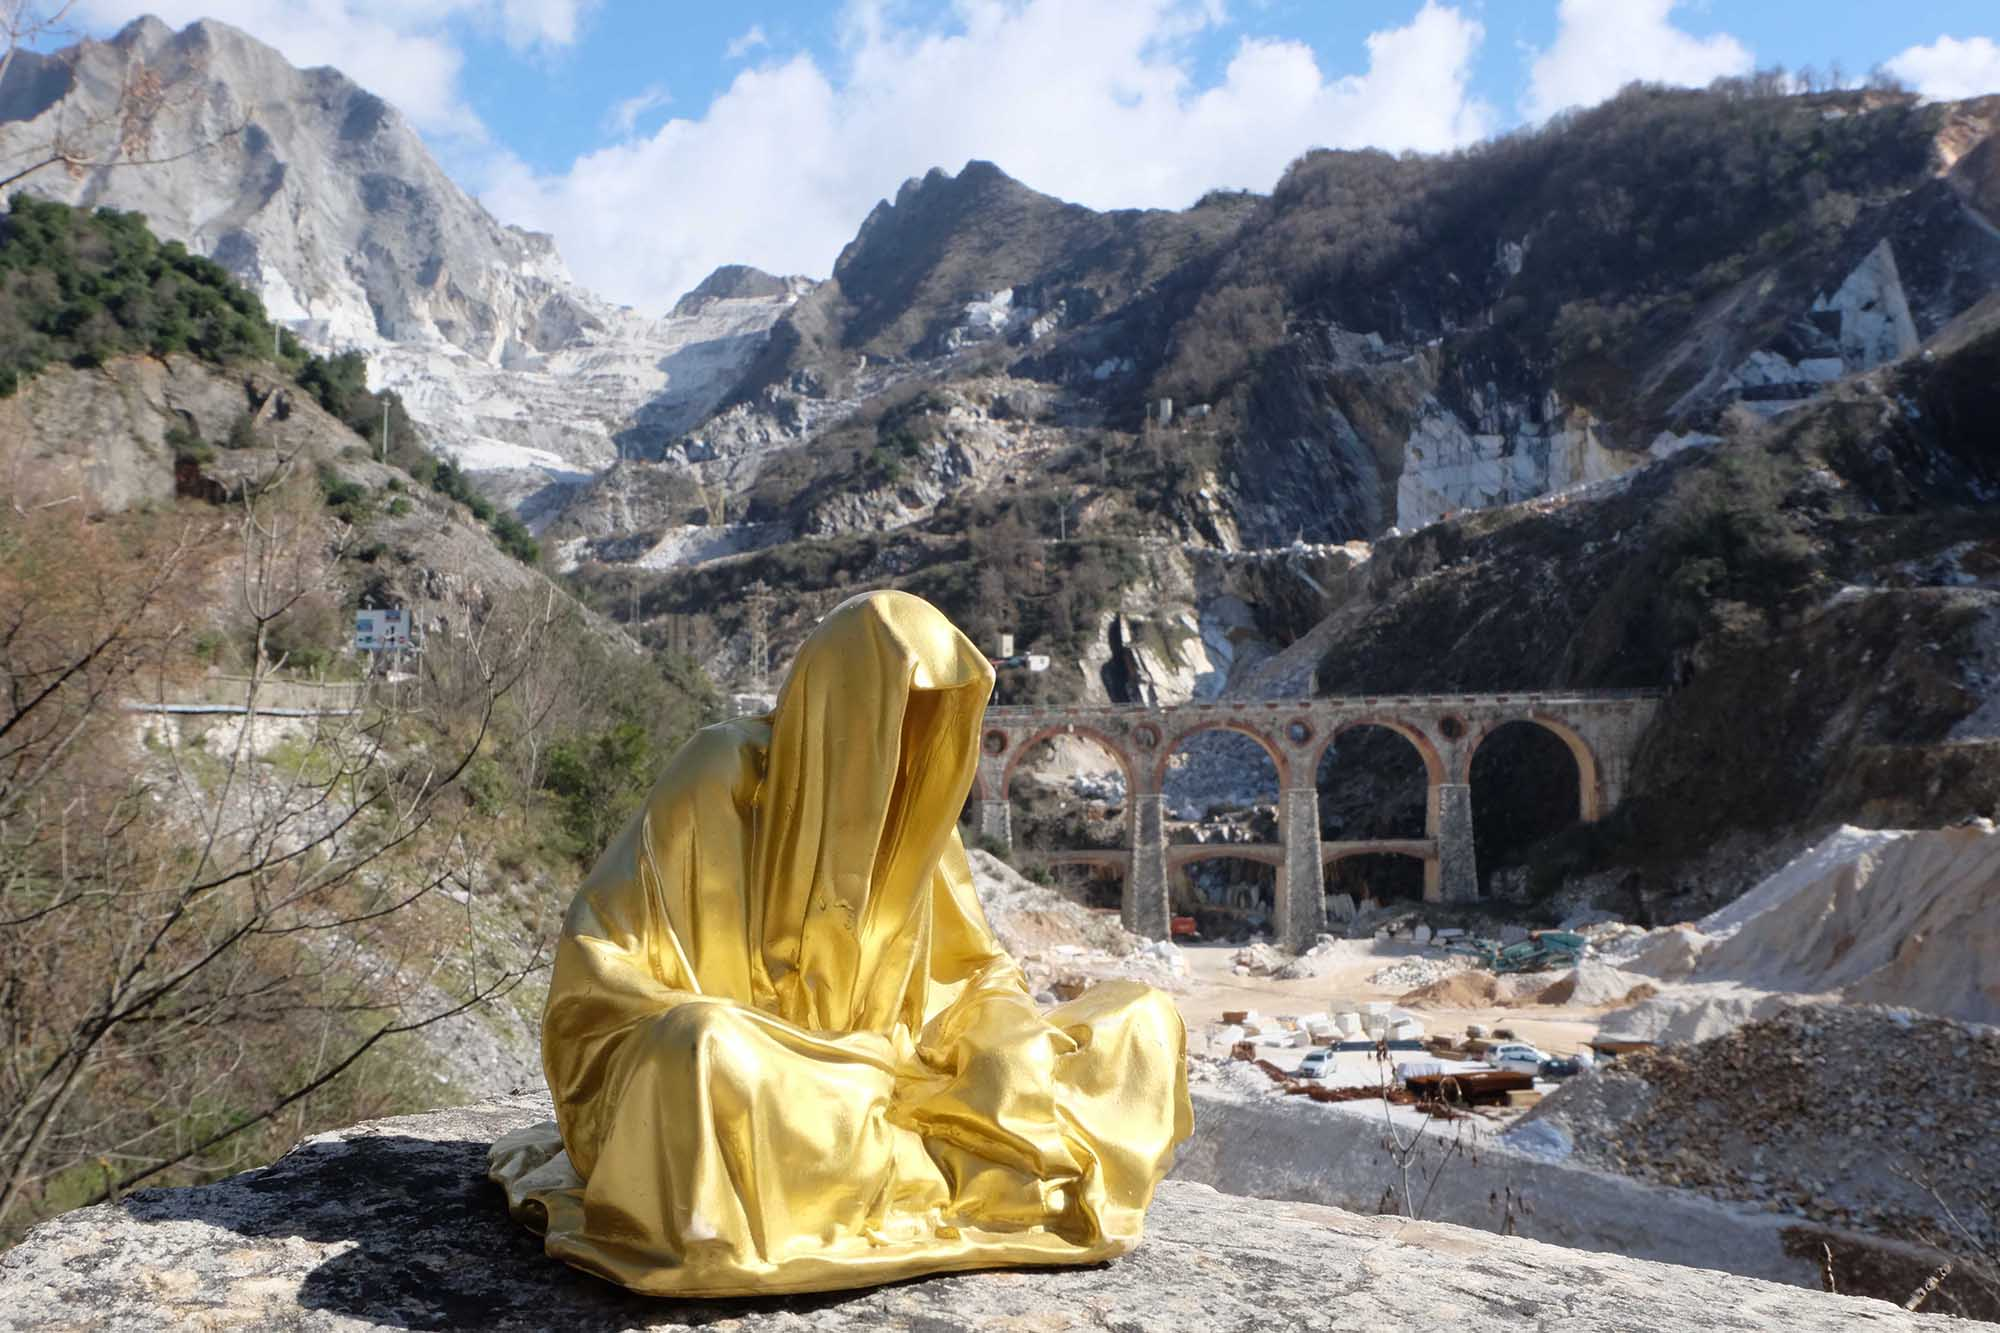 guardians of time manfred kili kielnhofer modern sculpture contemporary fine art design arts statue faceless religion stone marble carrara 0642